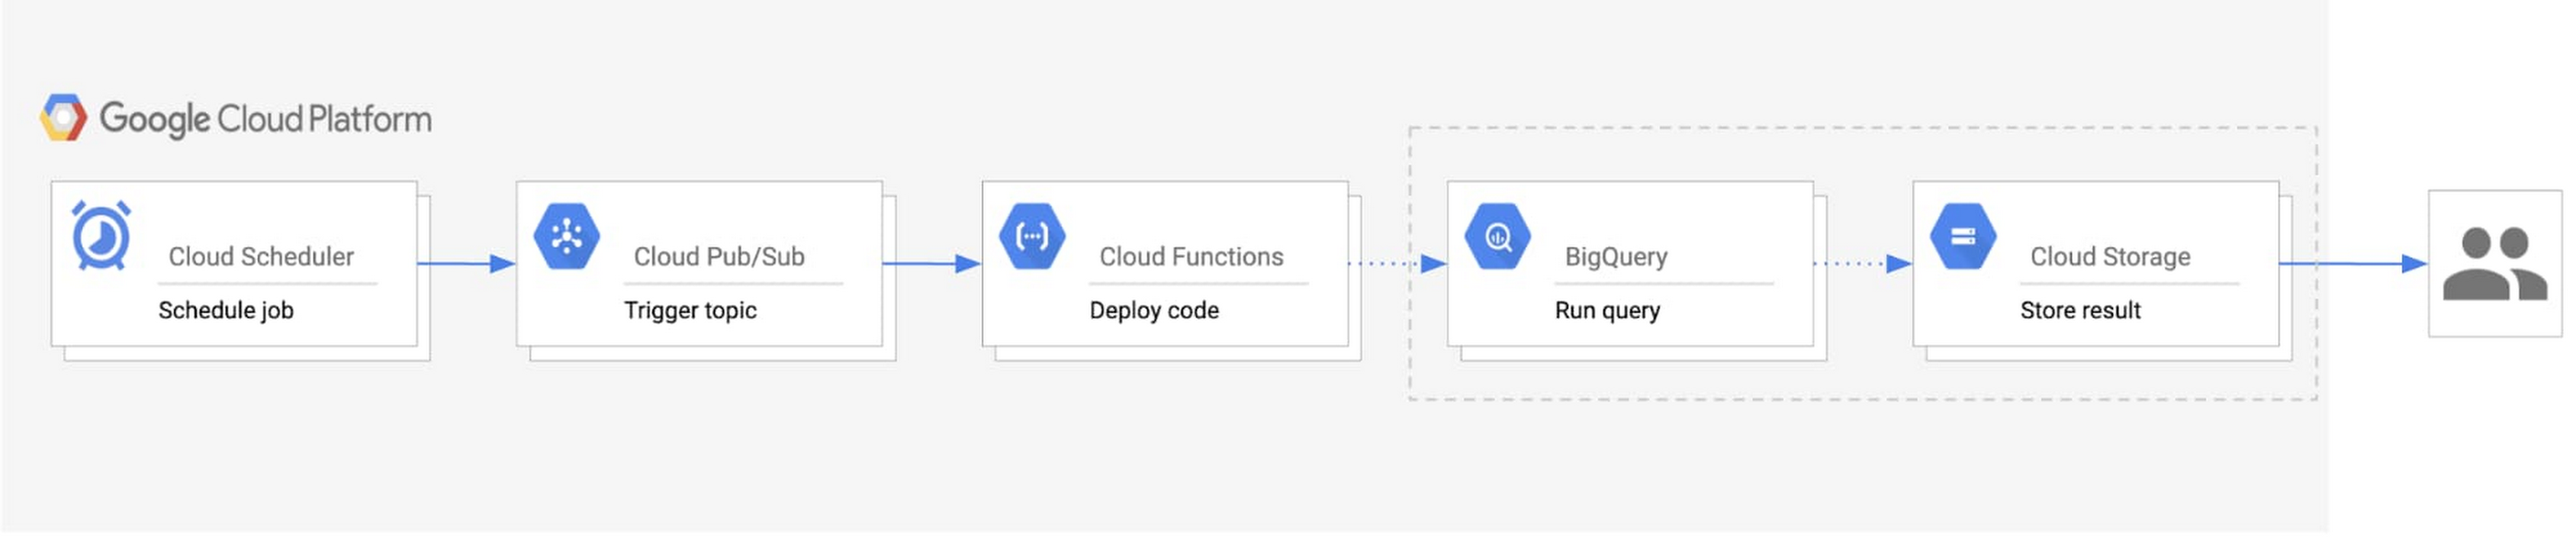 Data Analytics Results Via Automated Emails Google Cloud Blog